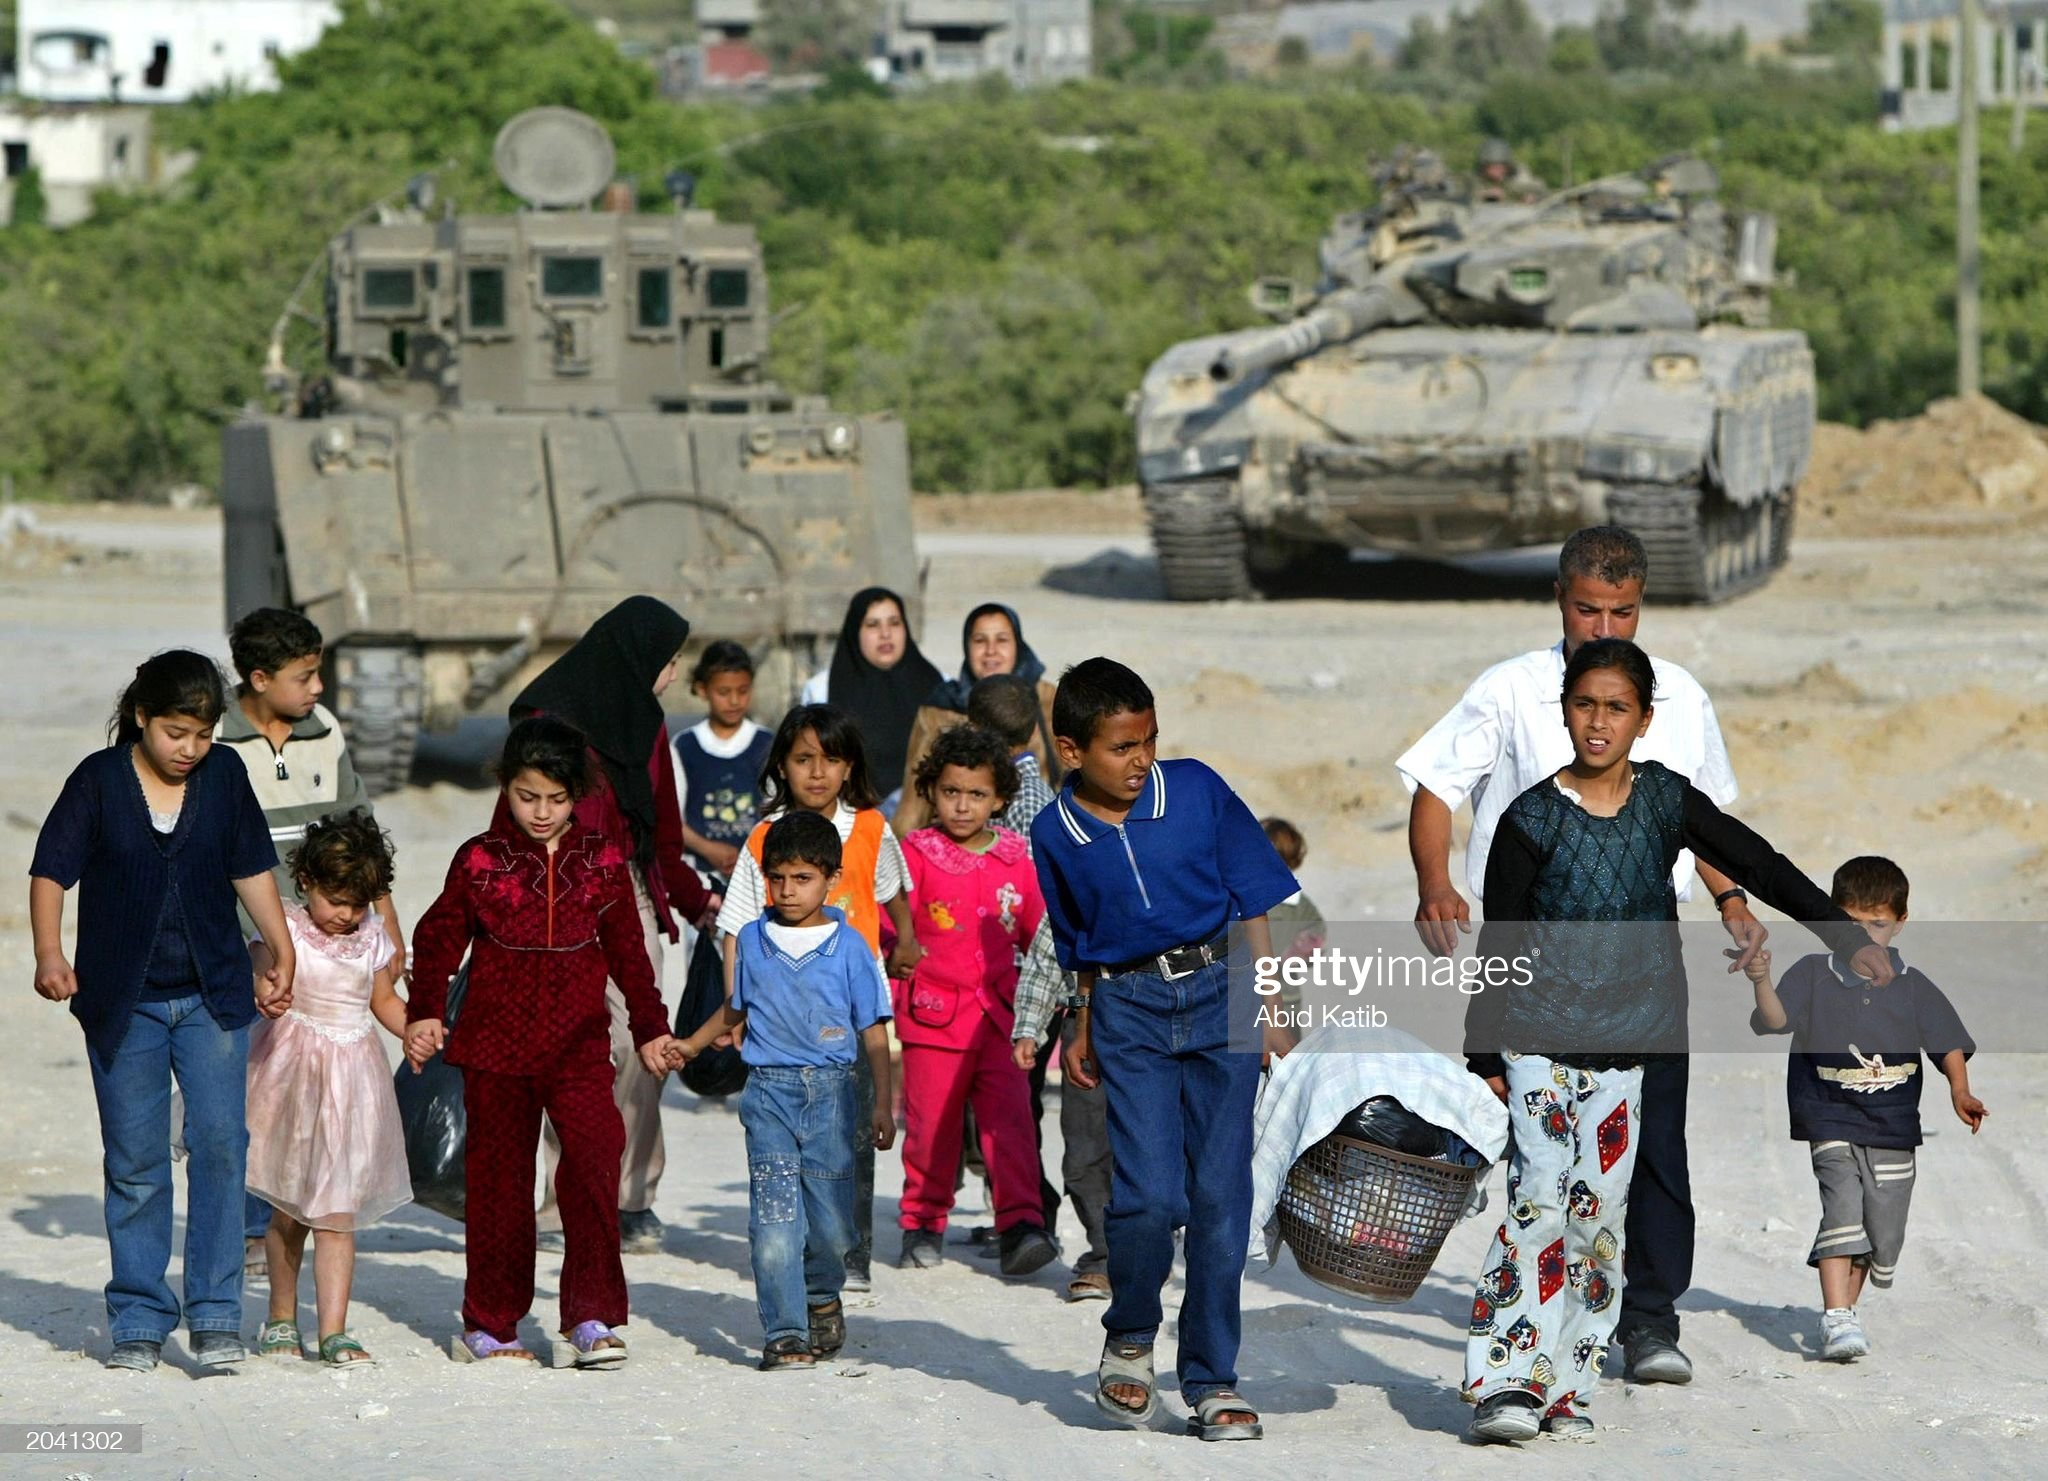 https://media.gettyimages.com/photos/palestinian-family-walks-in-front-of-israeli-tanks-may-30-2003-in-picture-id2041302?s=2048x2048